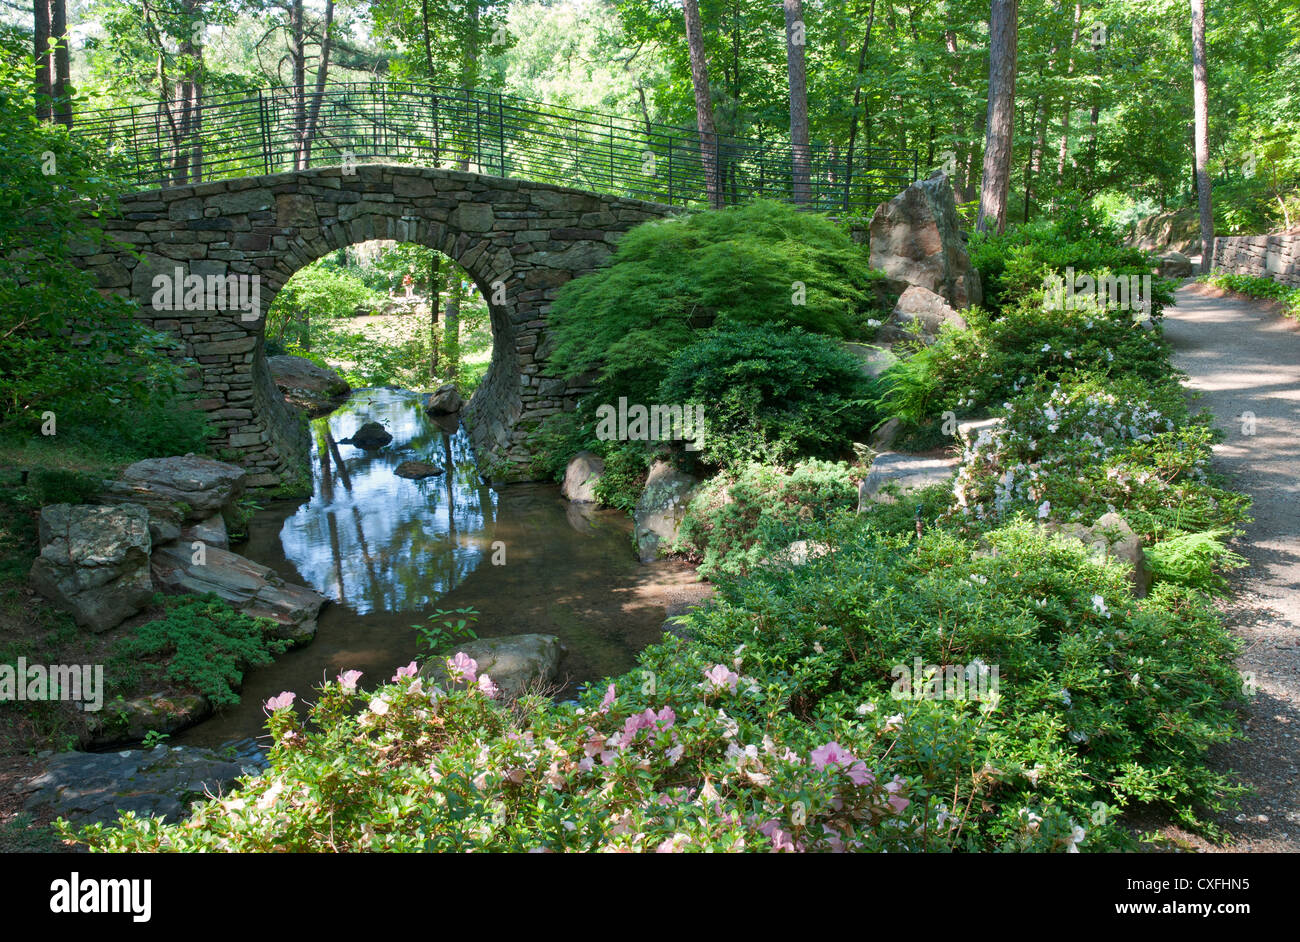 Arkansas Hot Springs Garvan Woodland Gardens Ada Accessible Stock Photo Royalty Free Image